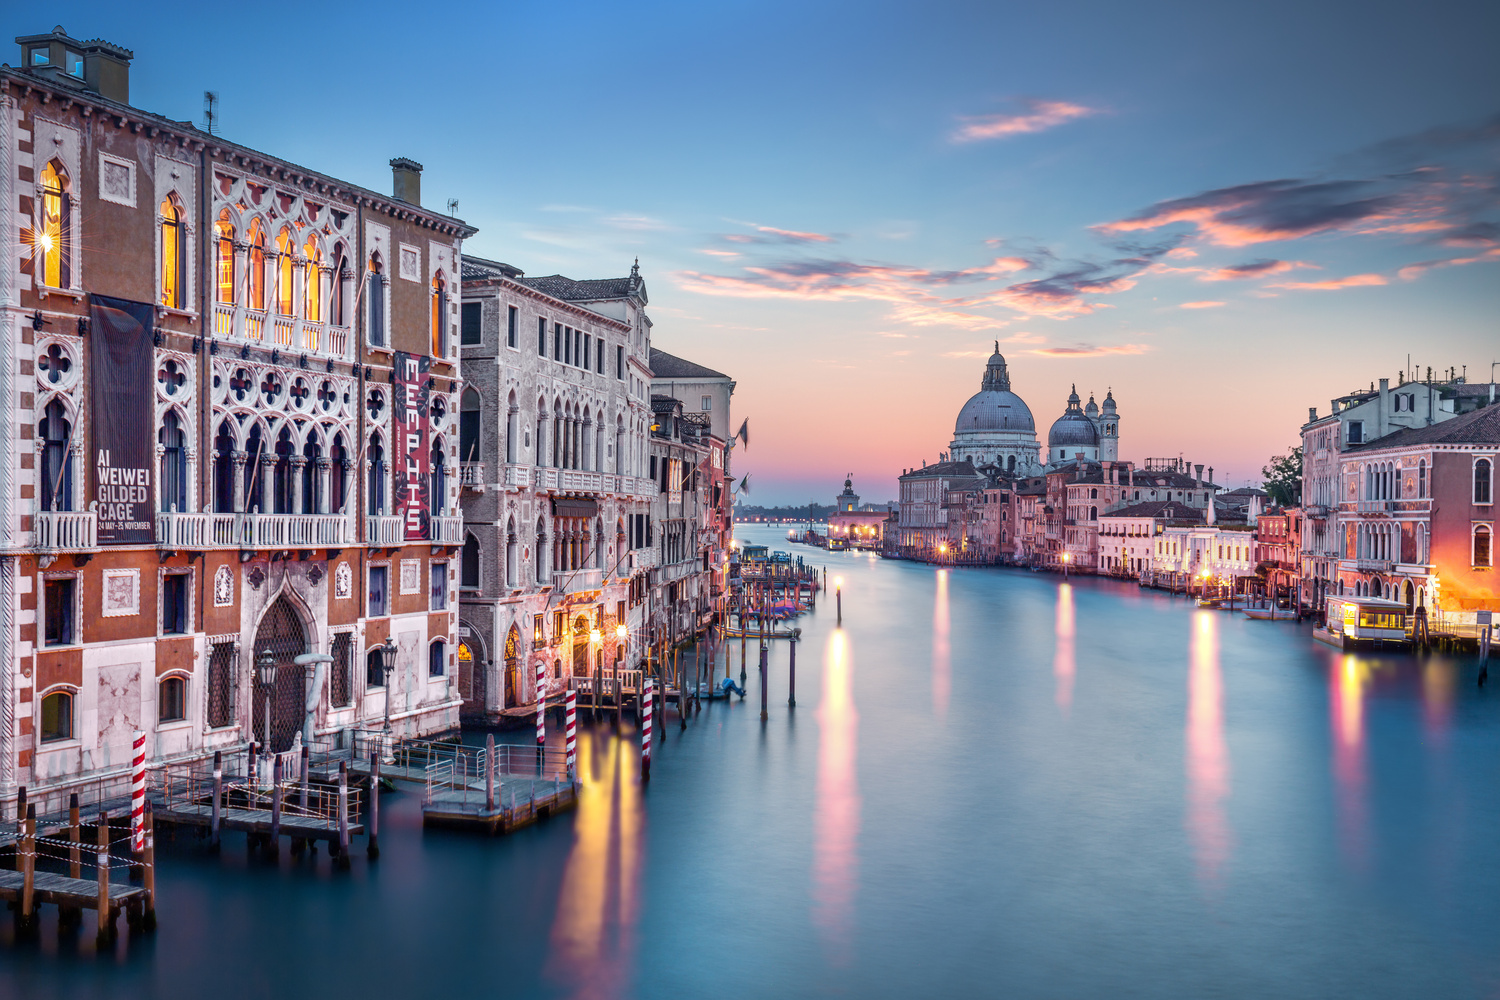 Venice, Italy - Grande Canal by Sven Taubert